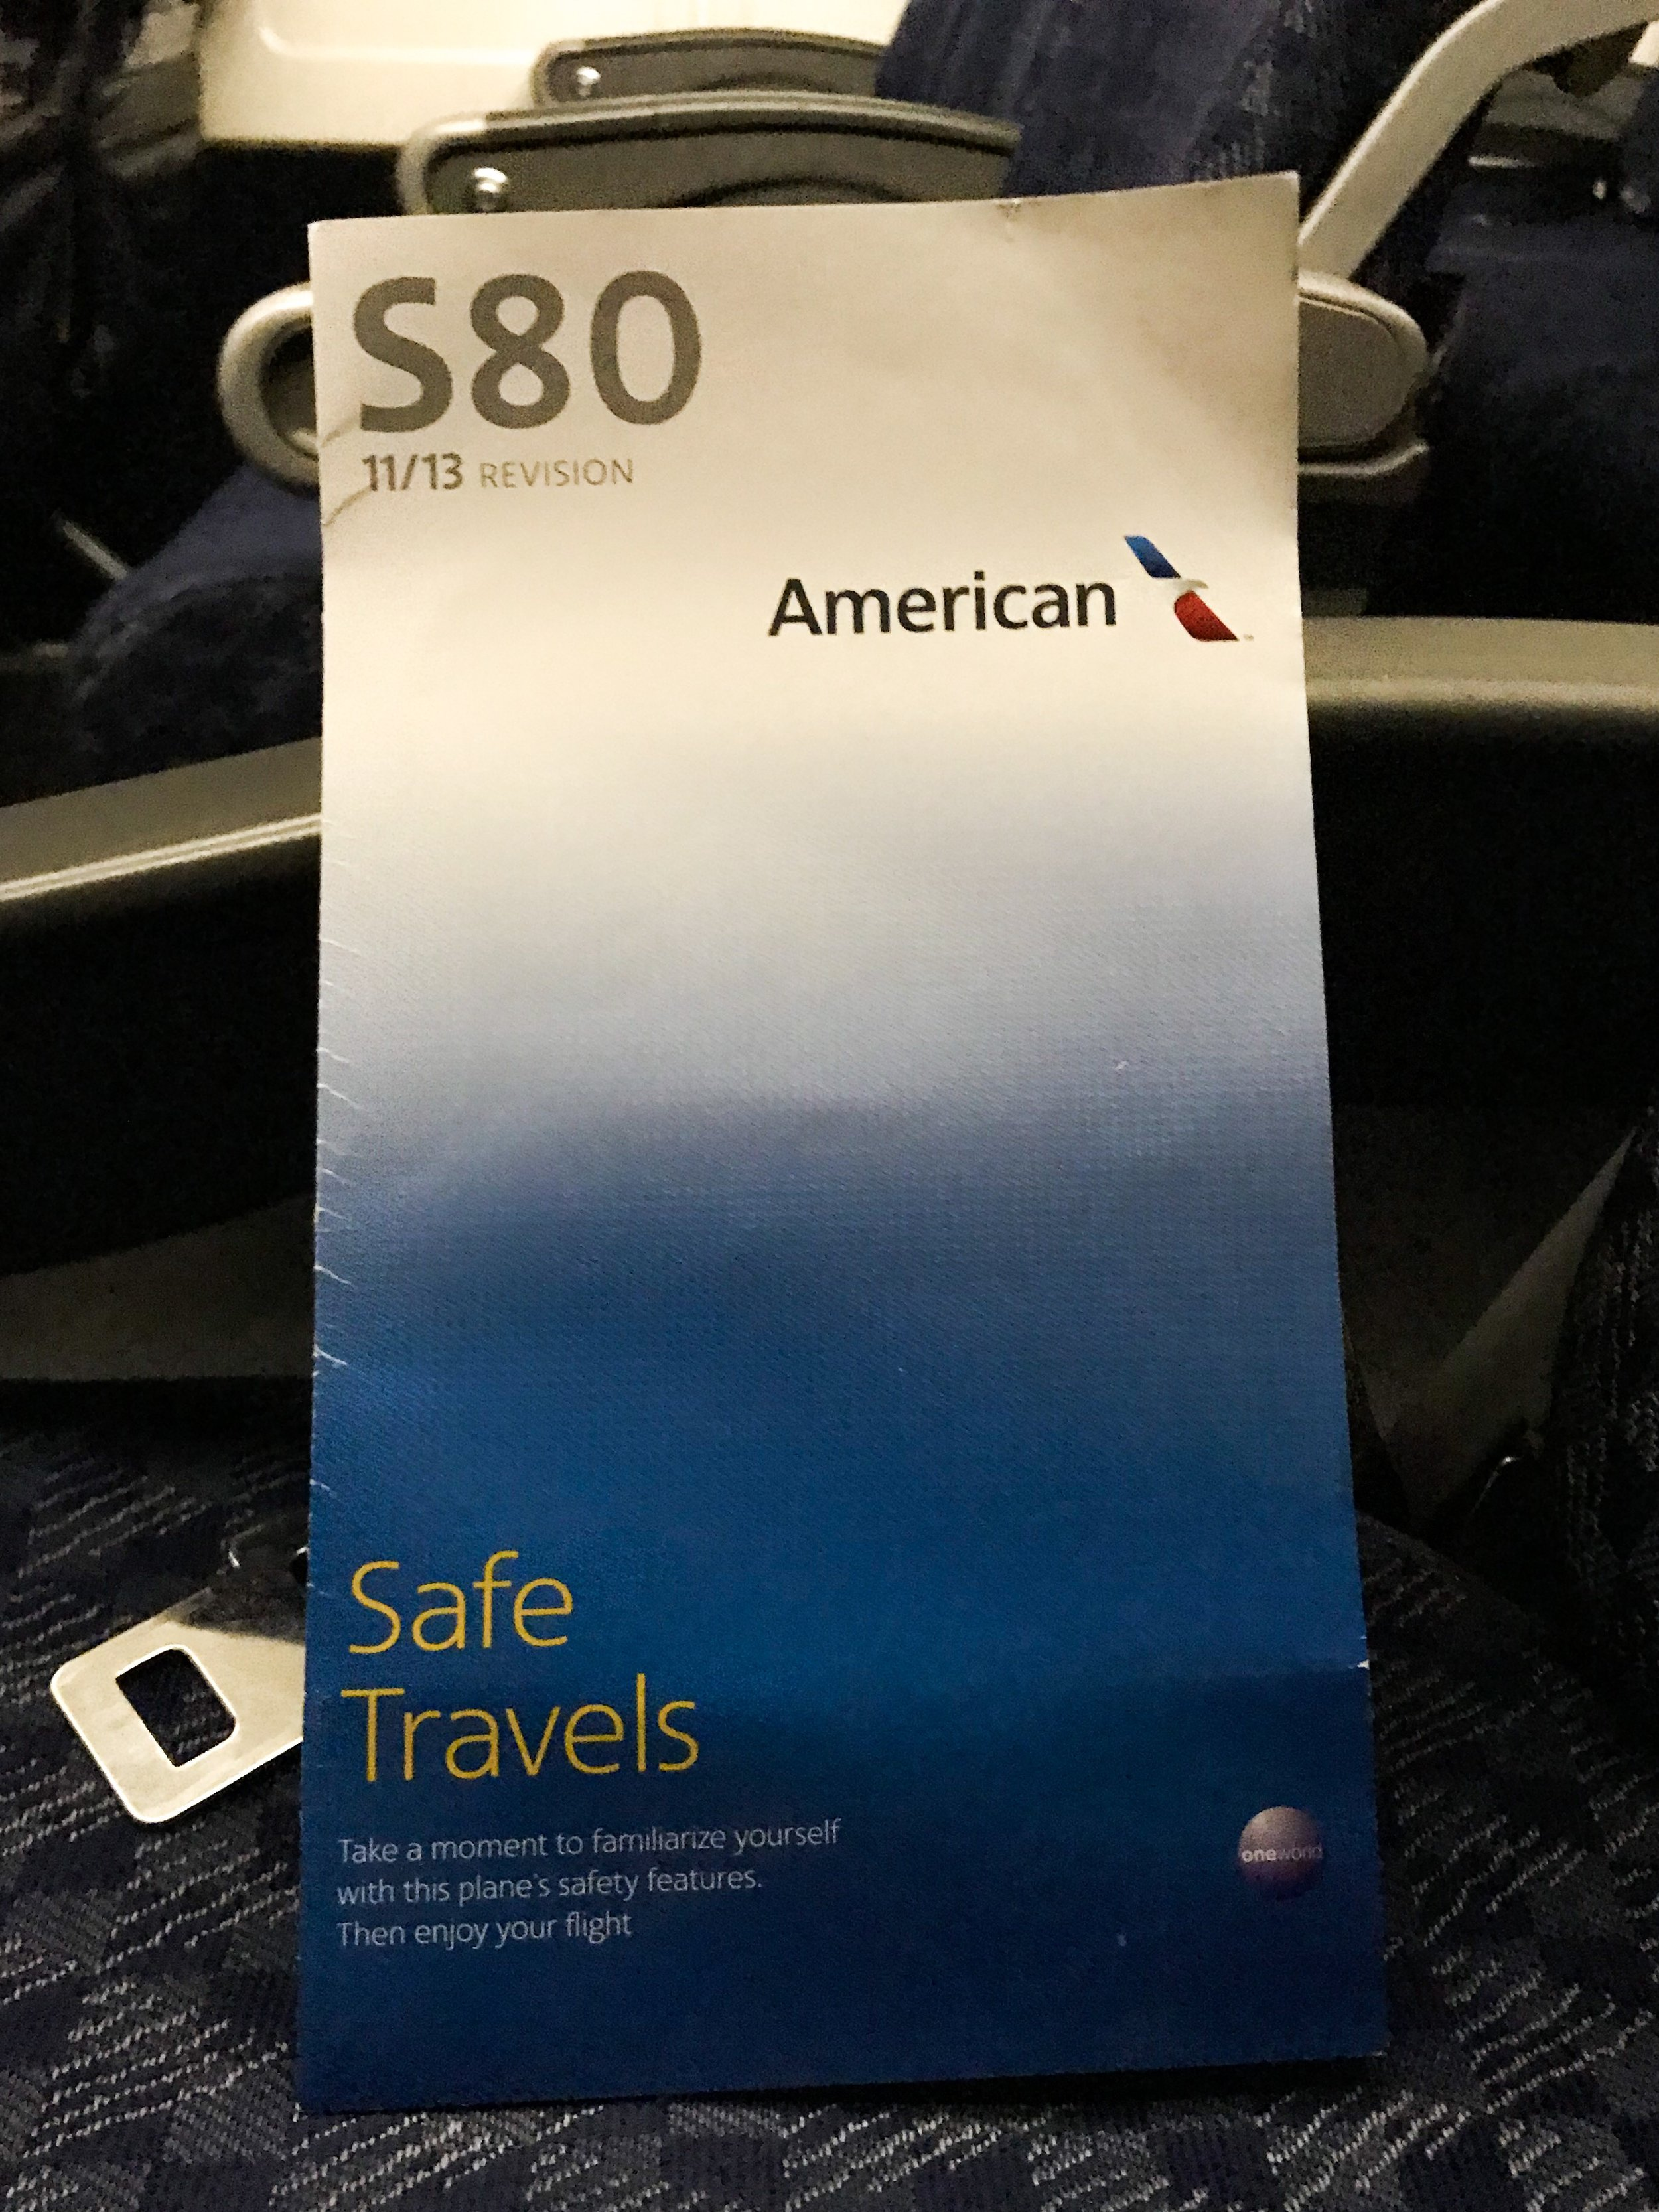 The safety card was the only thing in the cabin that showed the updated branding (which was introduced six years prior).